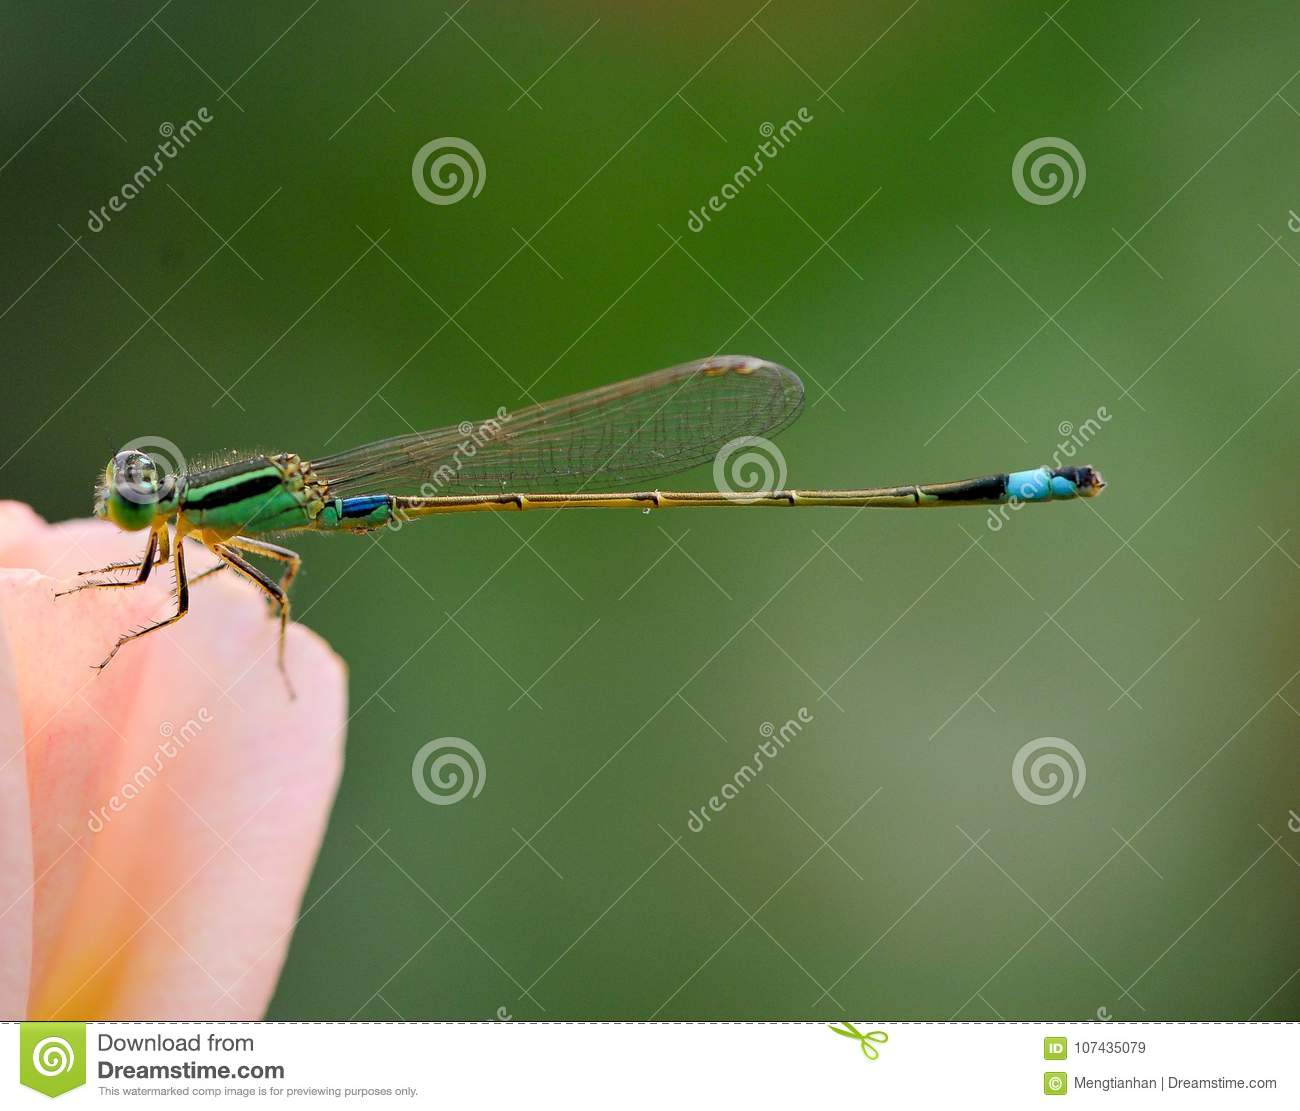 The Dragonflies stop in roses